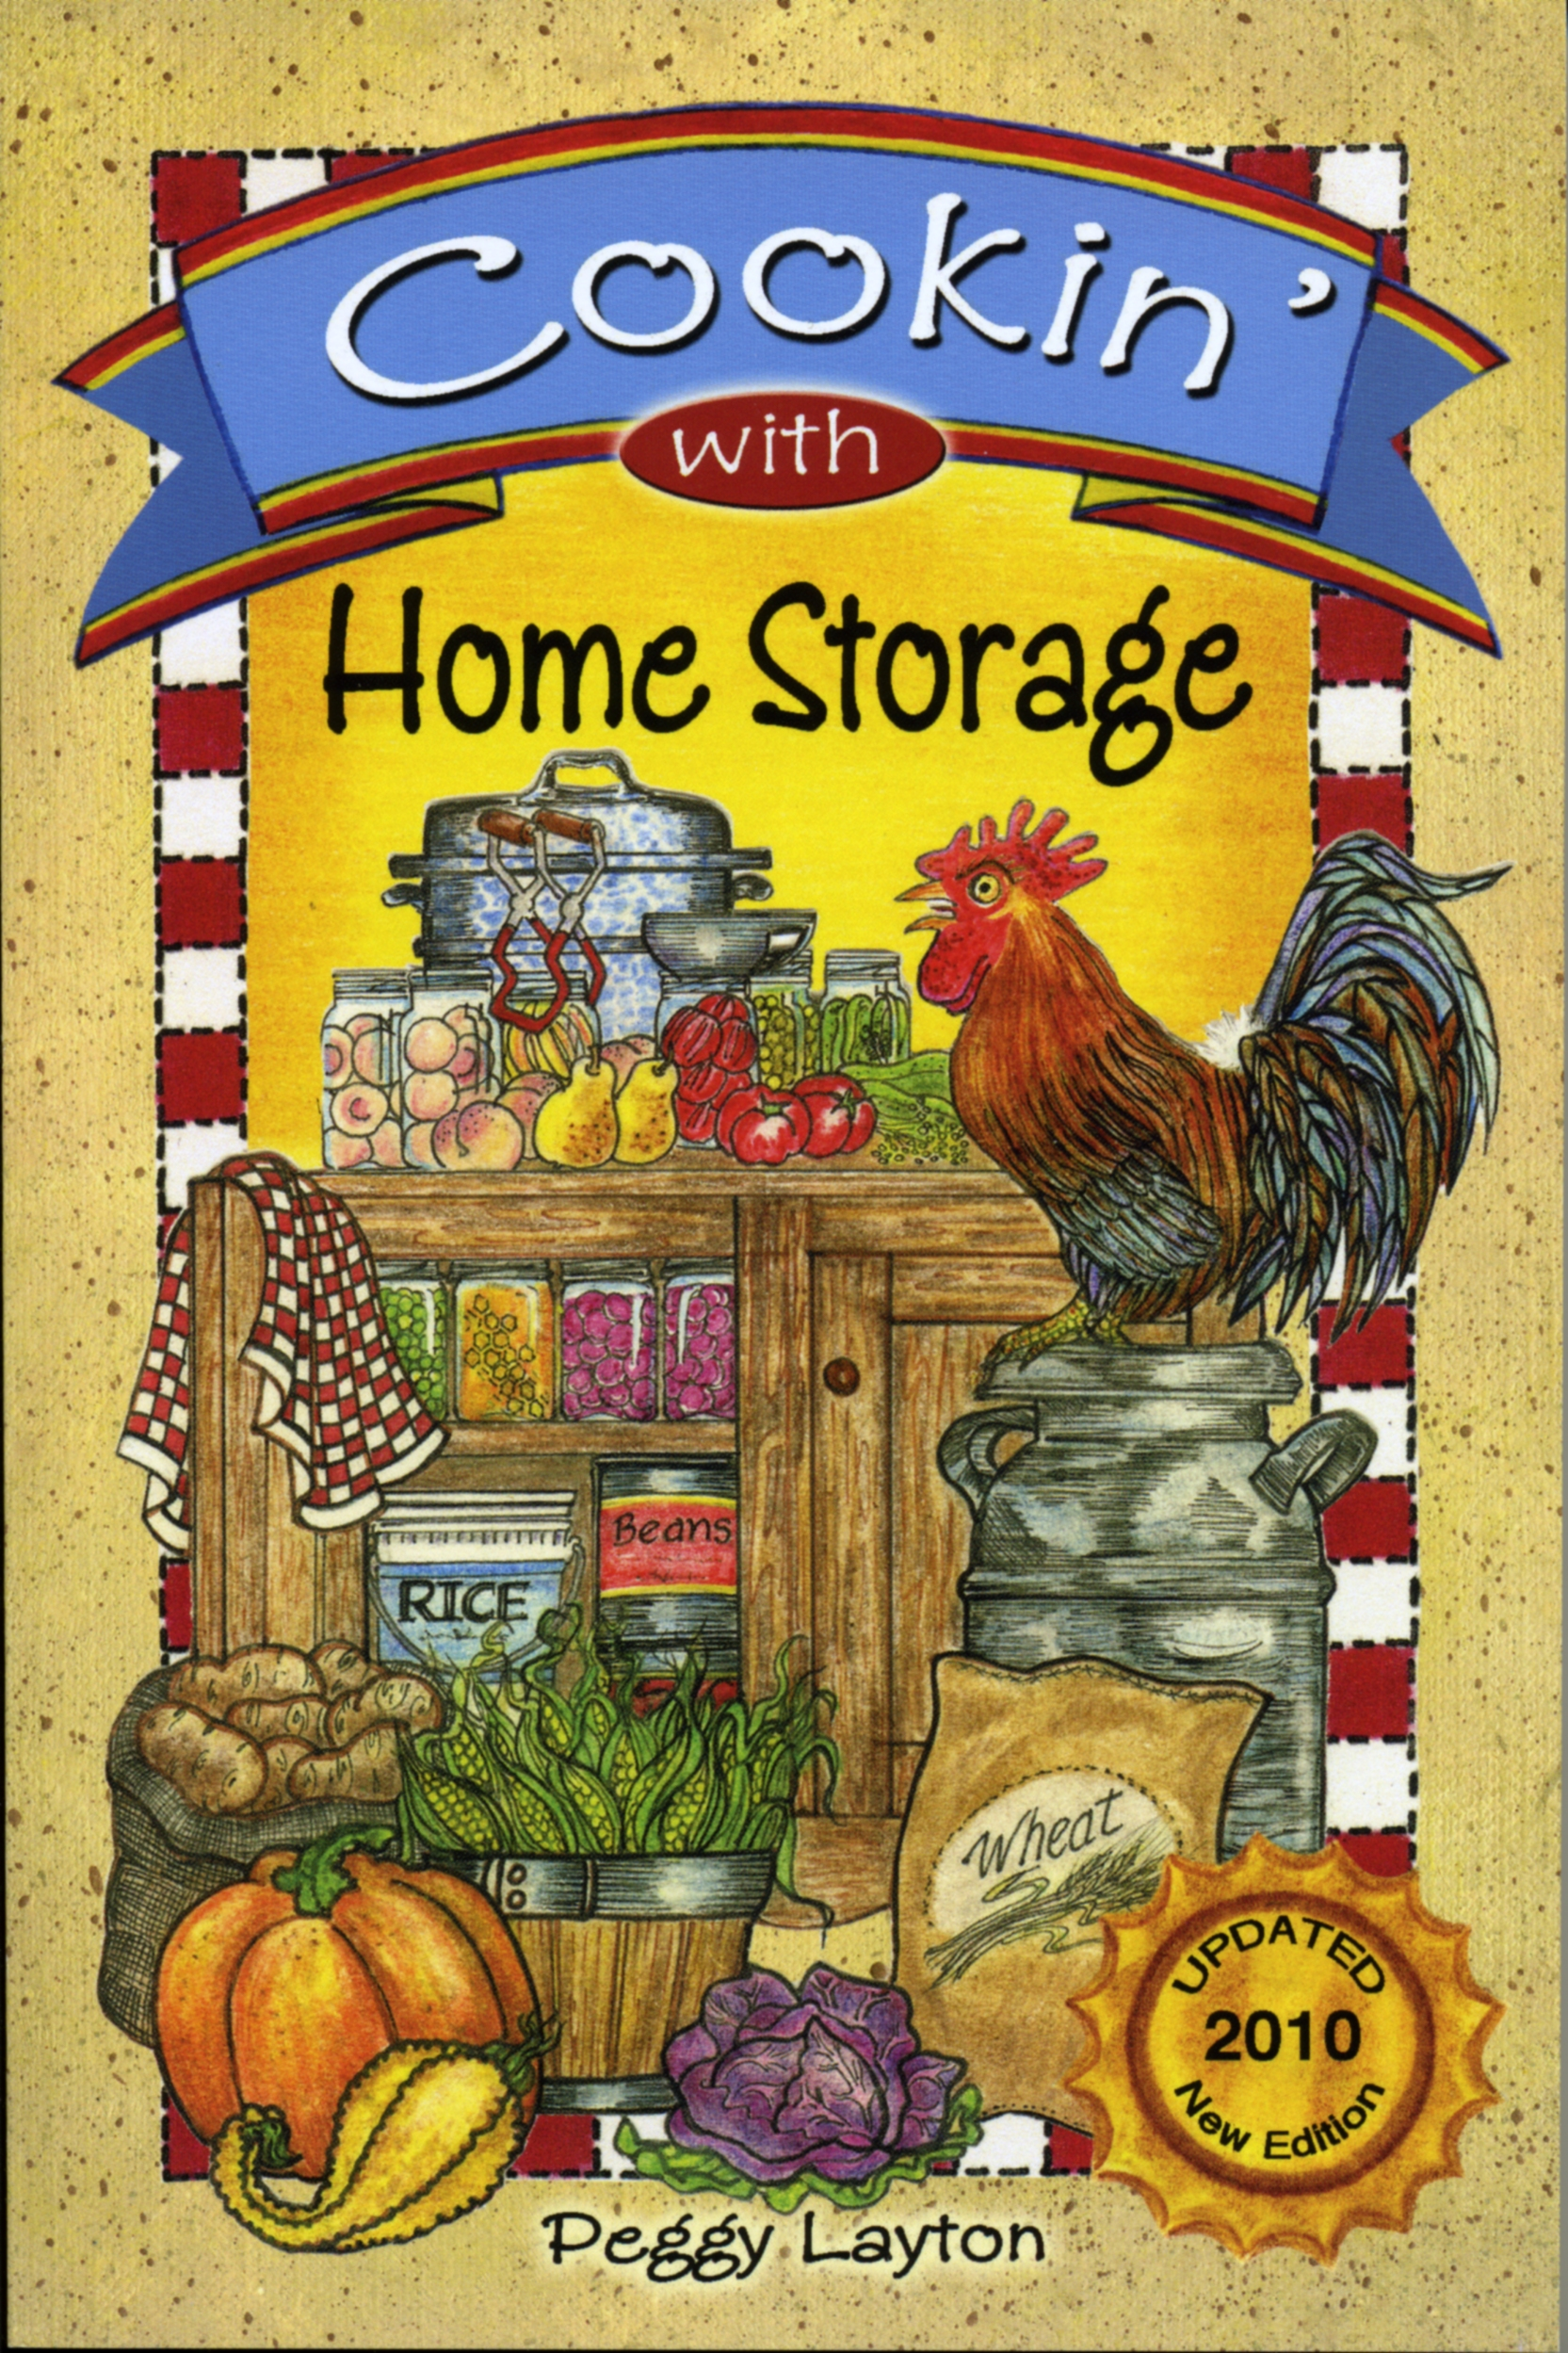 Cookin' with Home Storage: By Peggy Layton